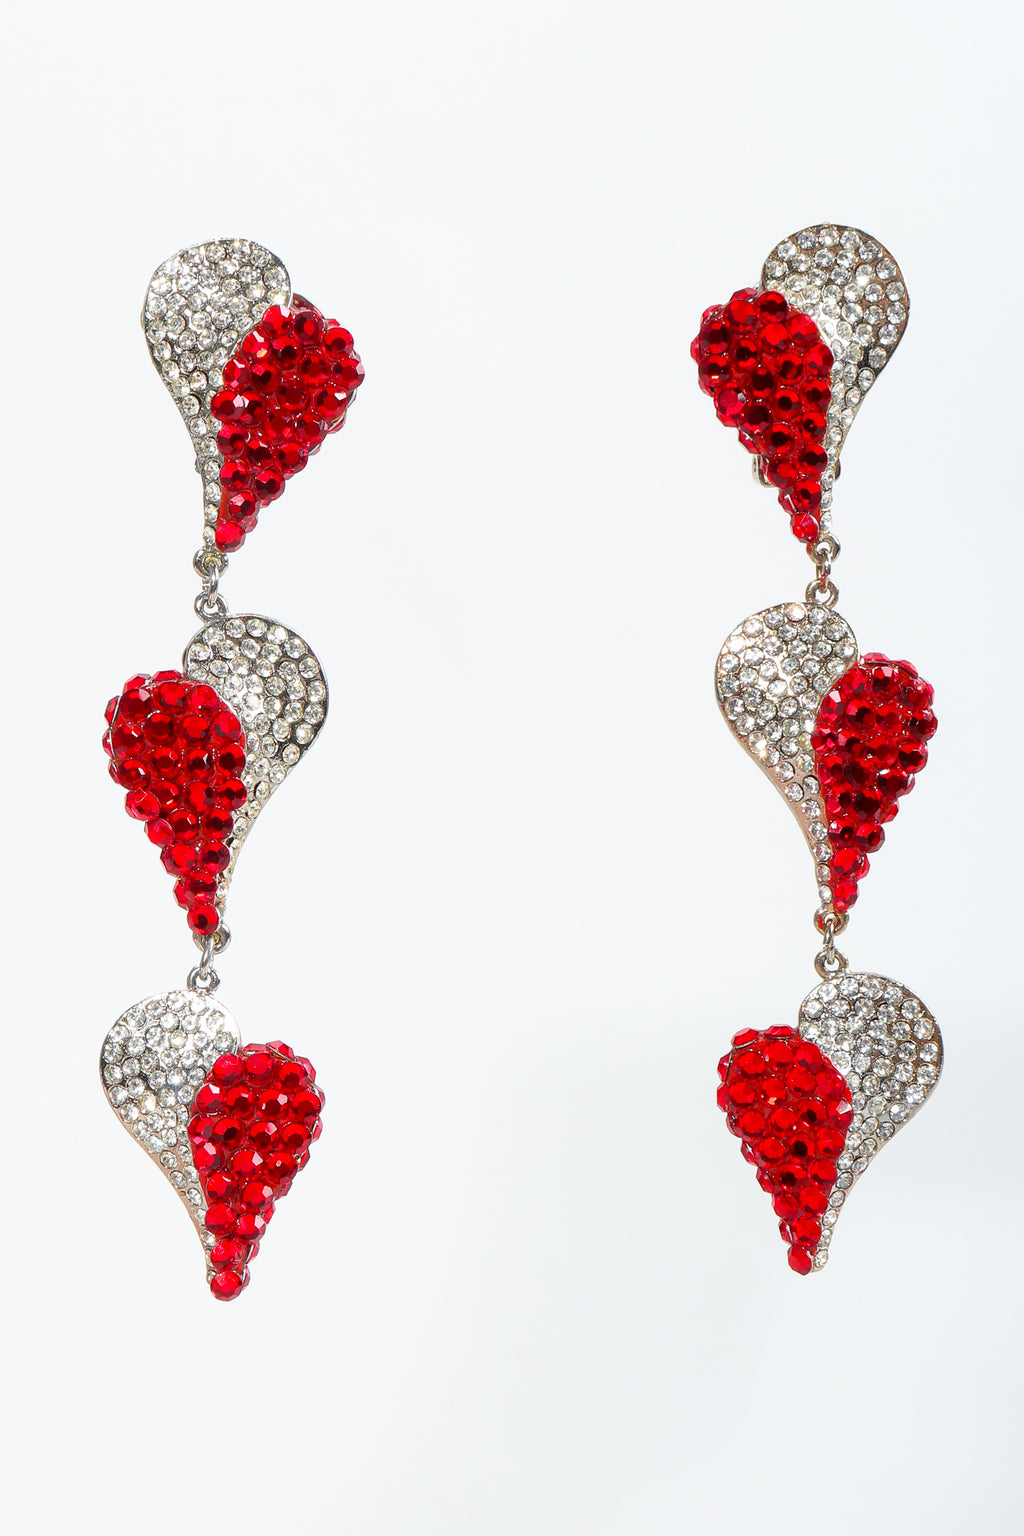 Vintage Unsigned Rhinestone Falling Heart Earrings at Recess